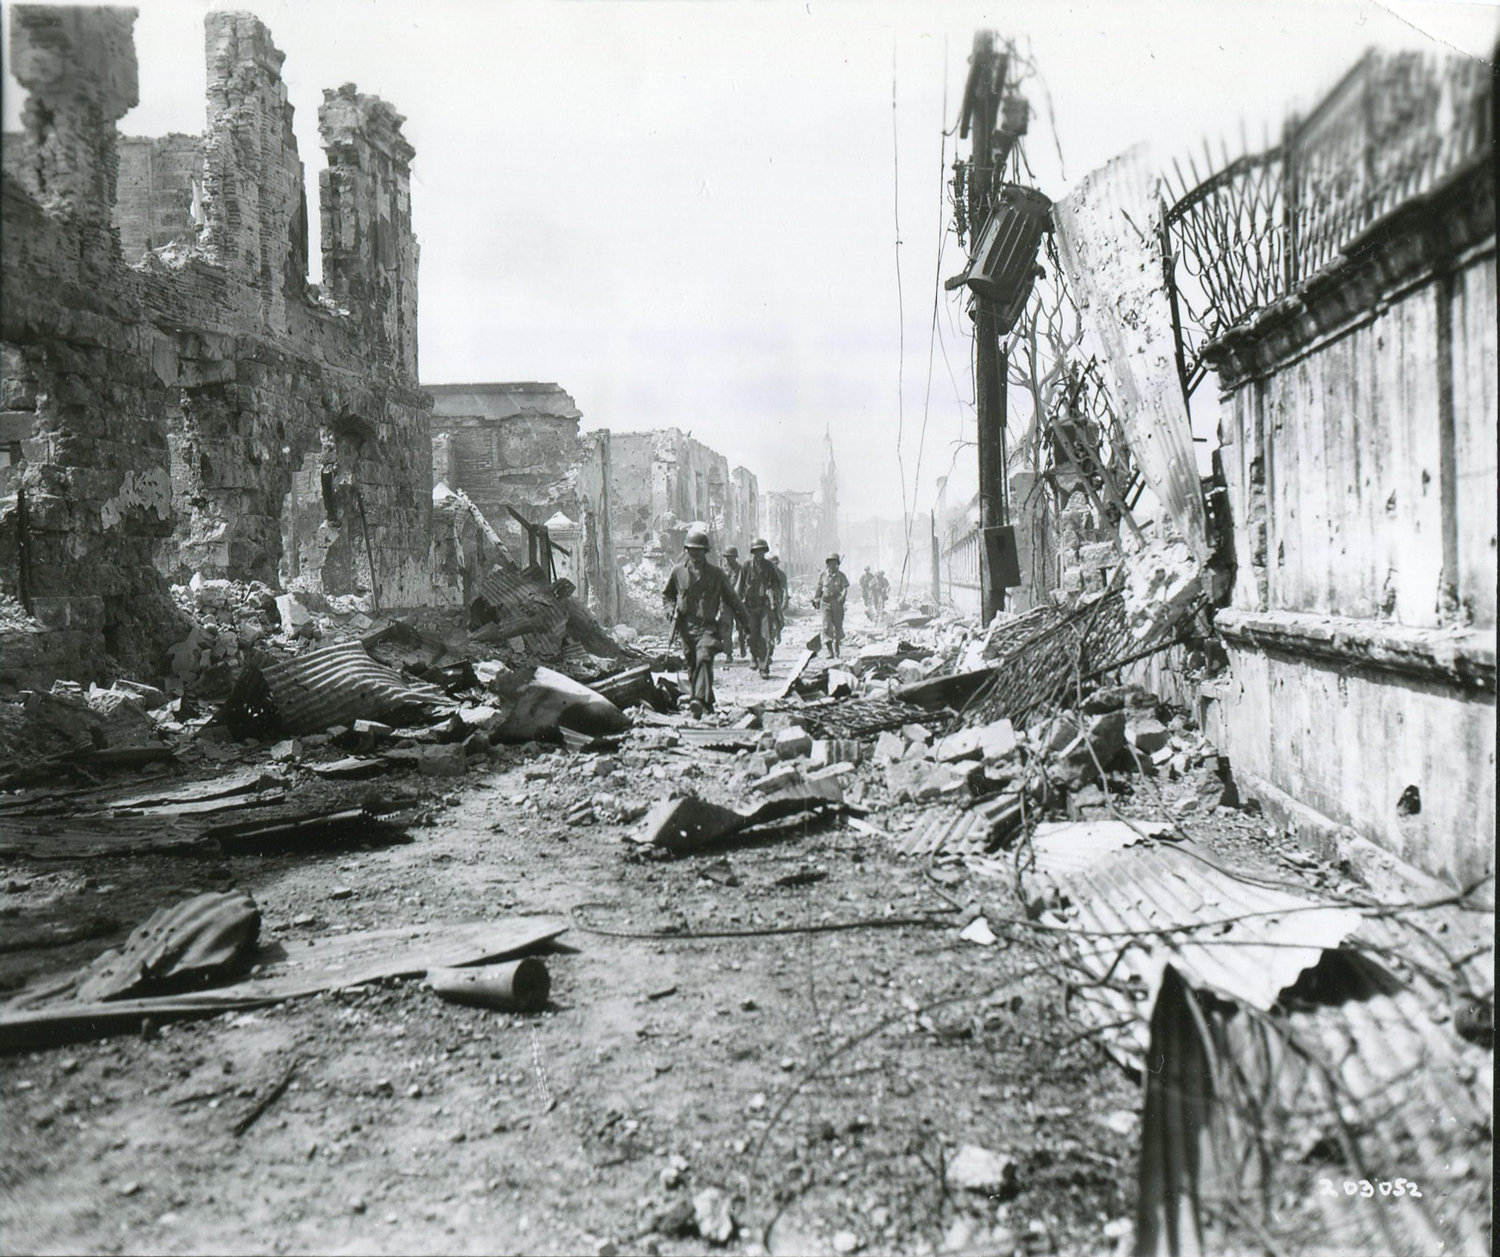 A platoon of American troops move into the Walled City on February 23, 1945. (National Archives)